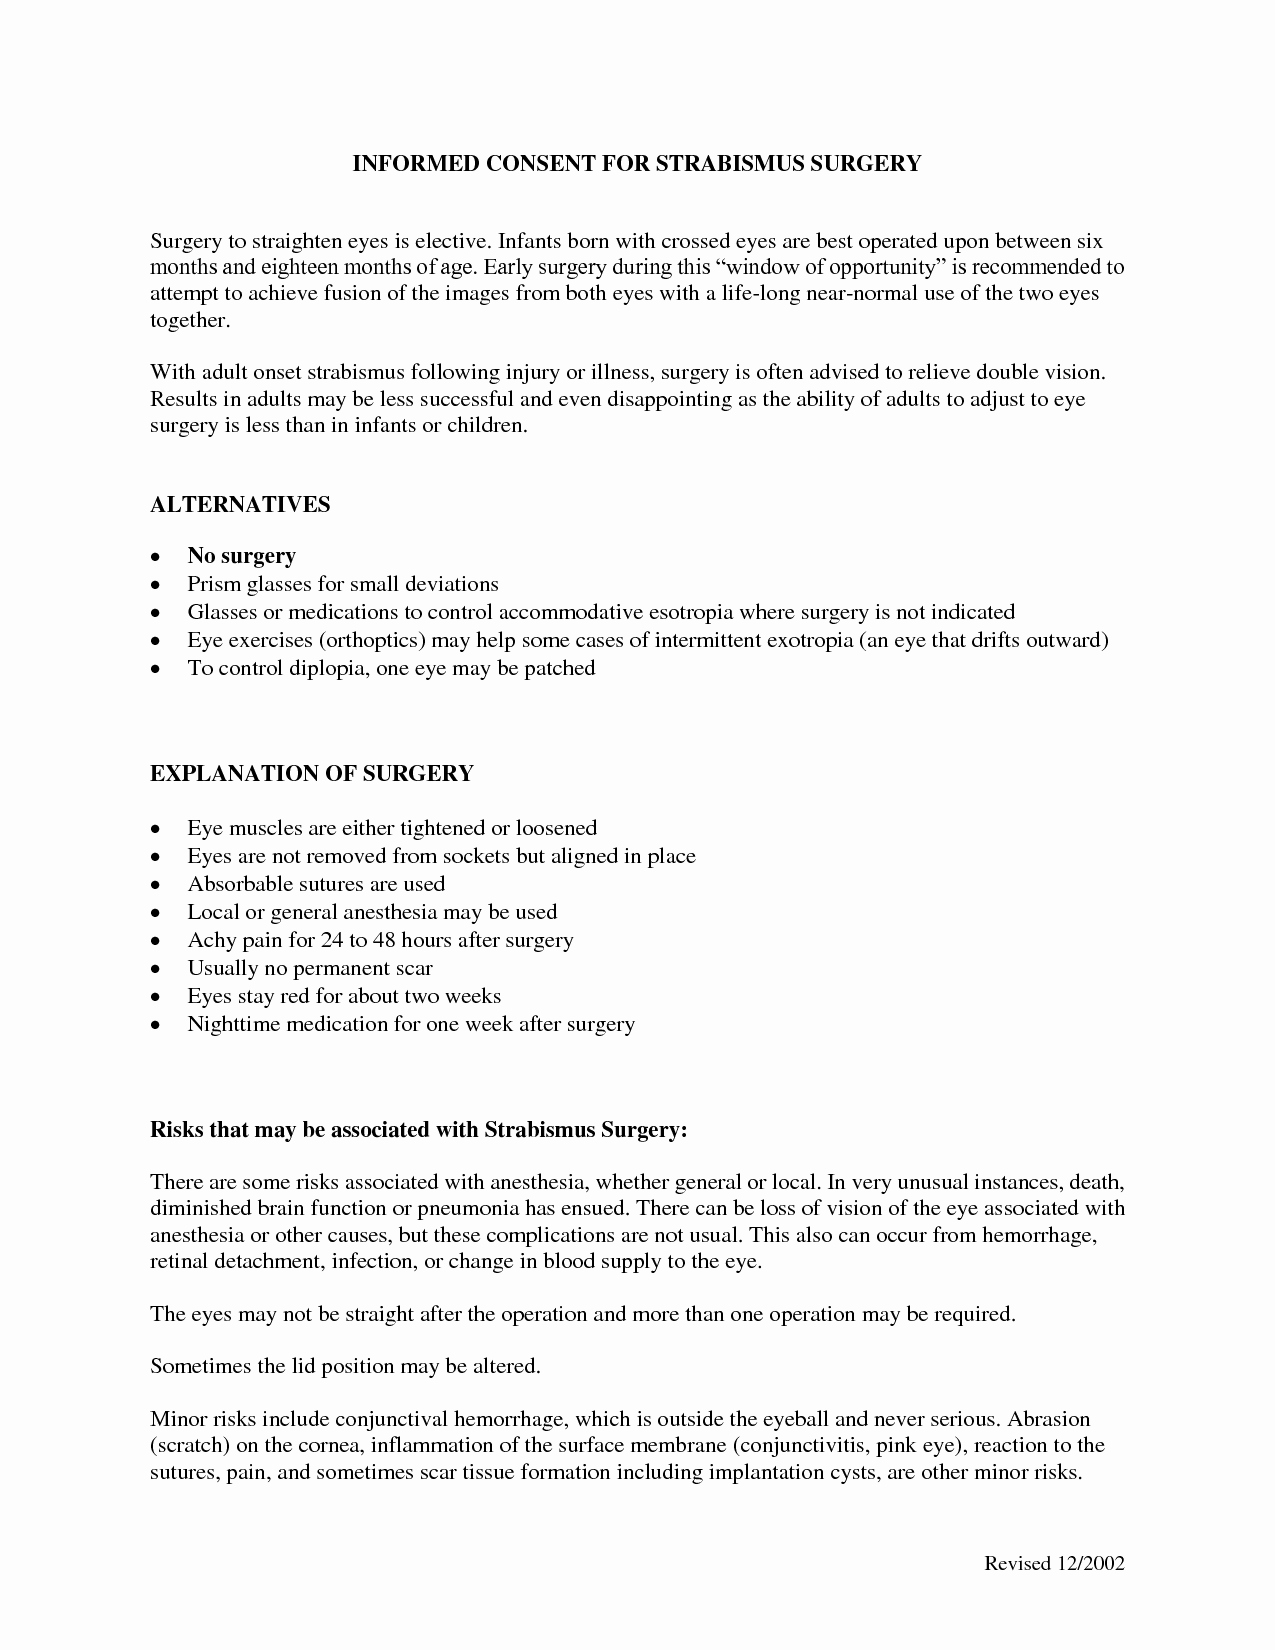 Video Consent form Template Inspirational Surgery Informed Consent form Template